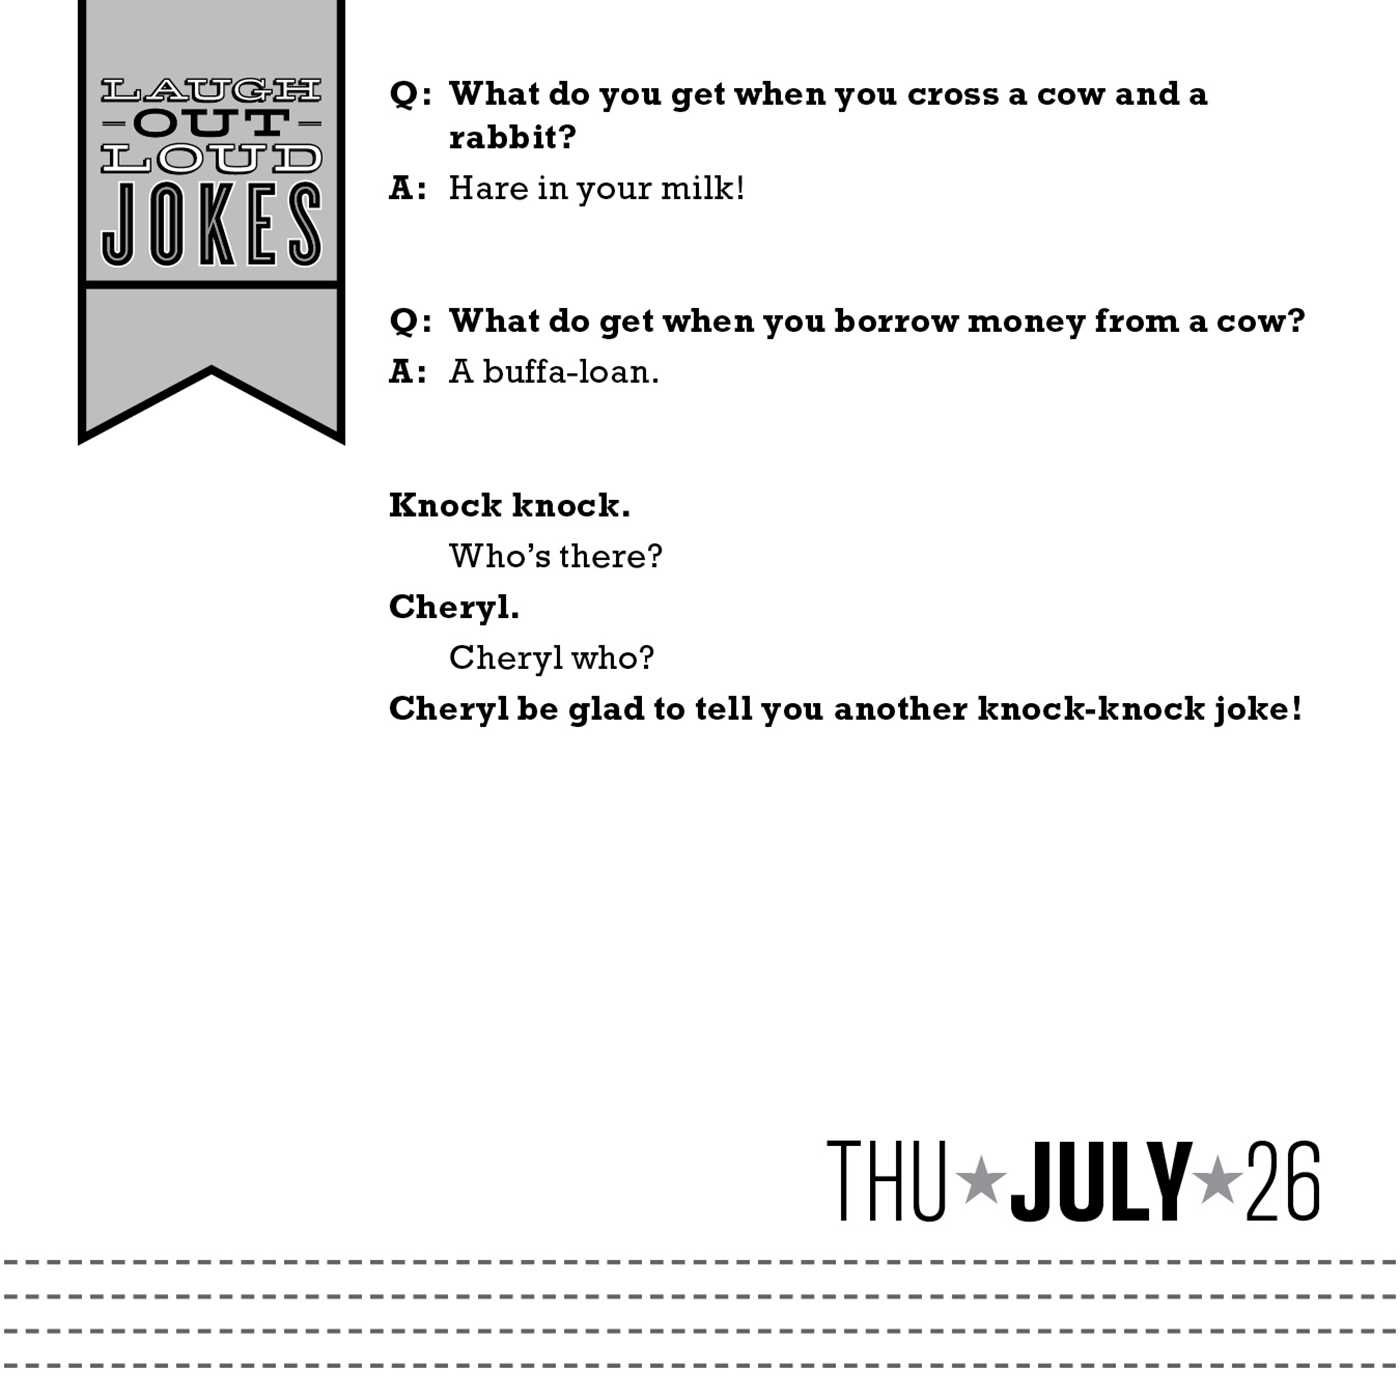 Amazon.com: Laugh-Out-Loud Jokes 2018 Day-to-Day Calendar ...